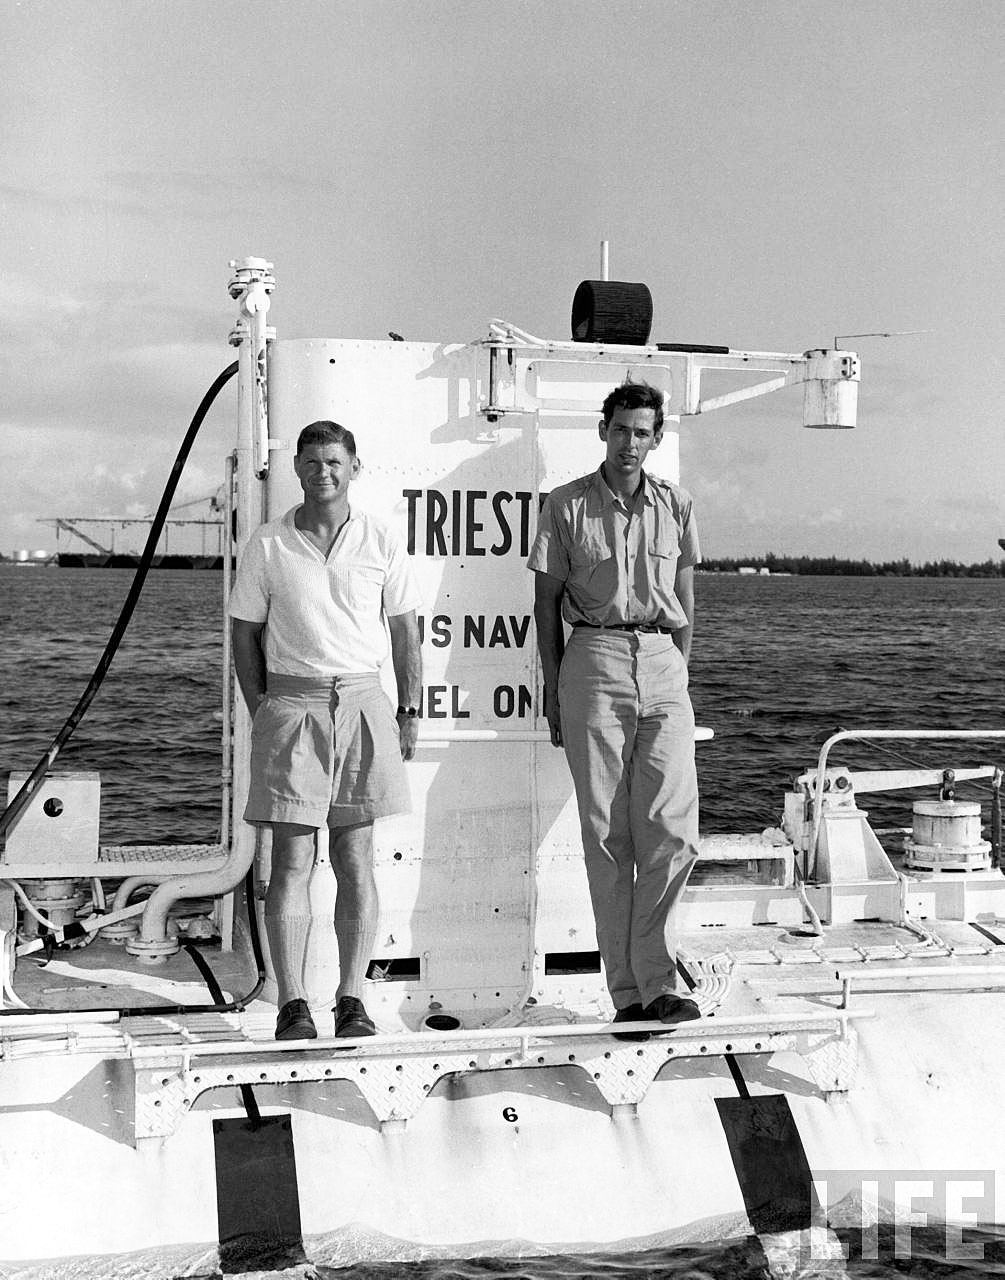 Jacques Piccard, Don Walsh and USS Trieste